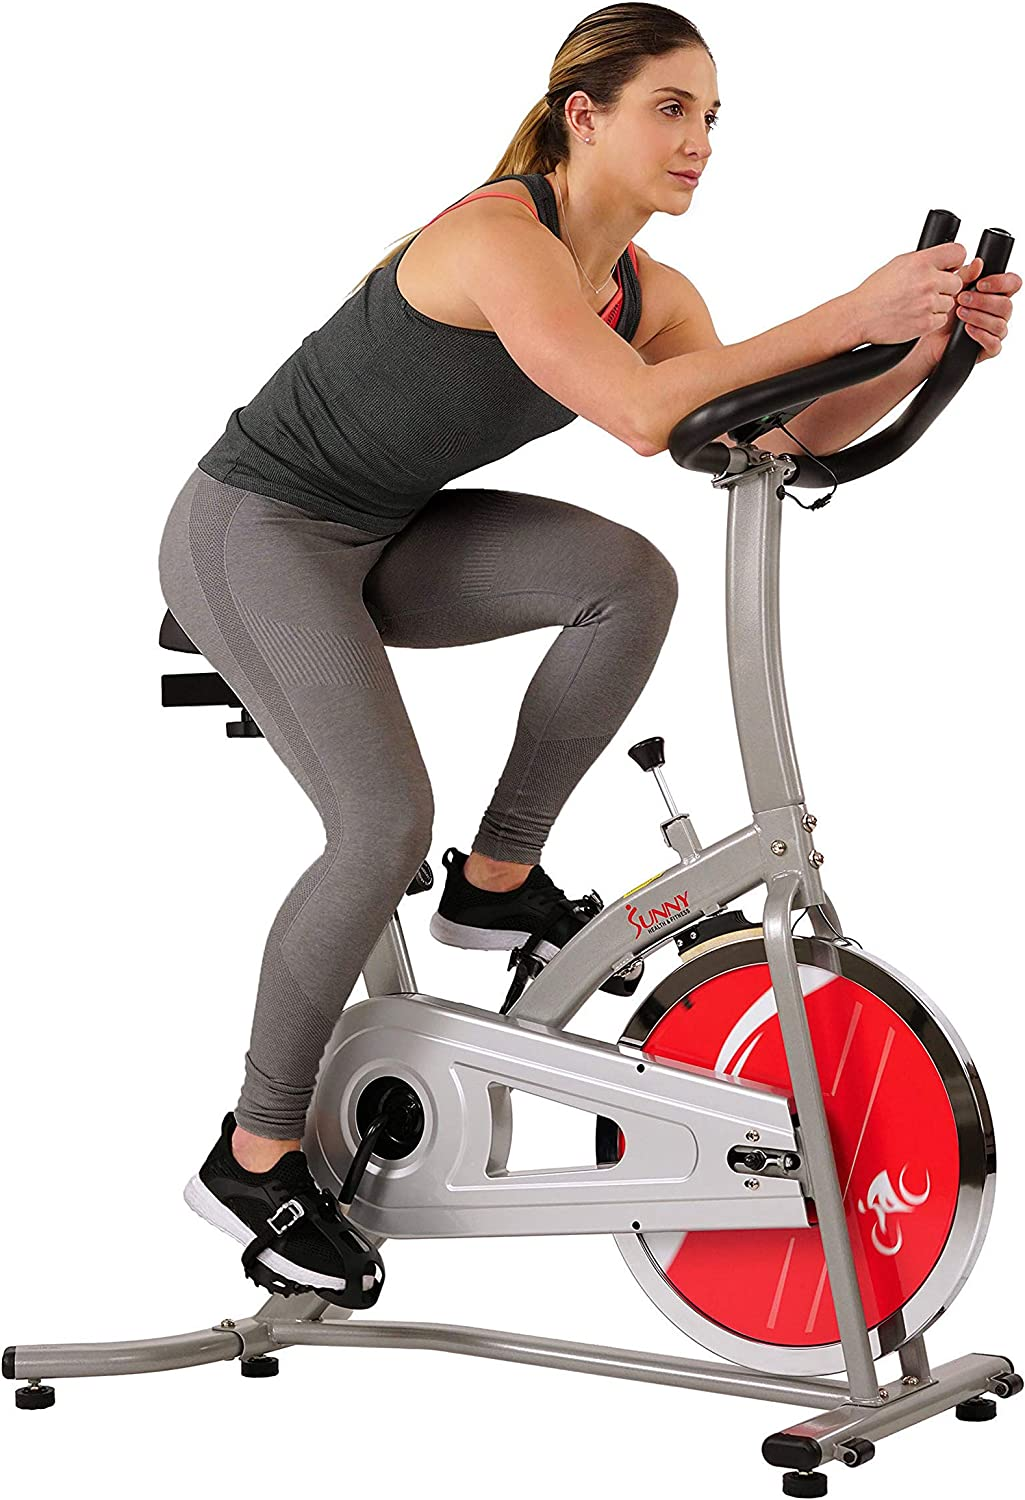 best exercise bike to lose weight: Sunny Health & Fitness 22LB Chromed Flywheel Bike